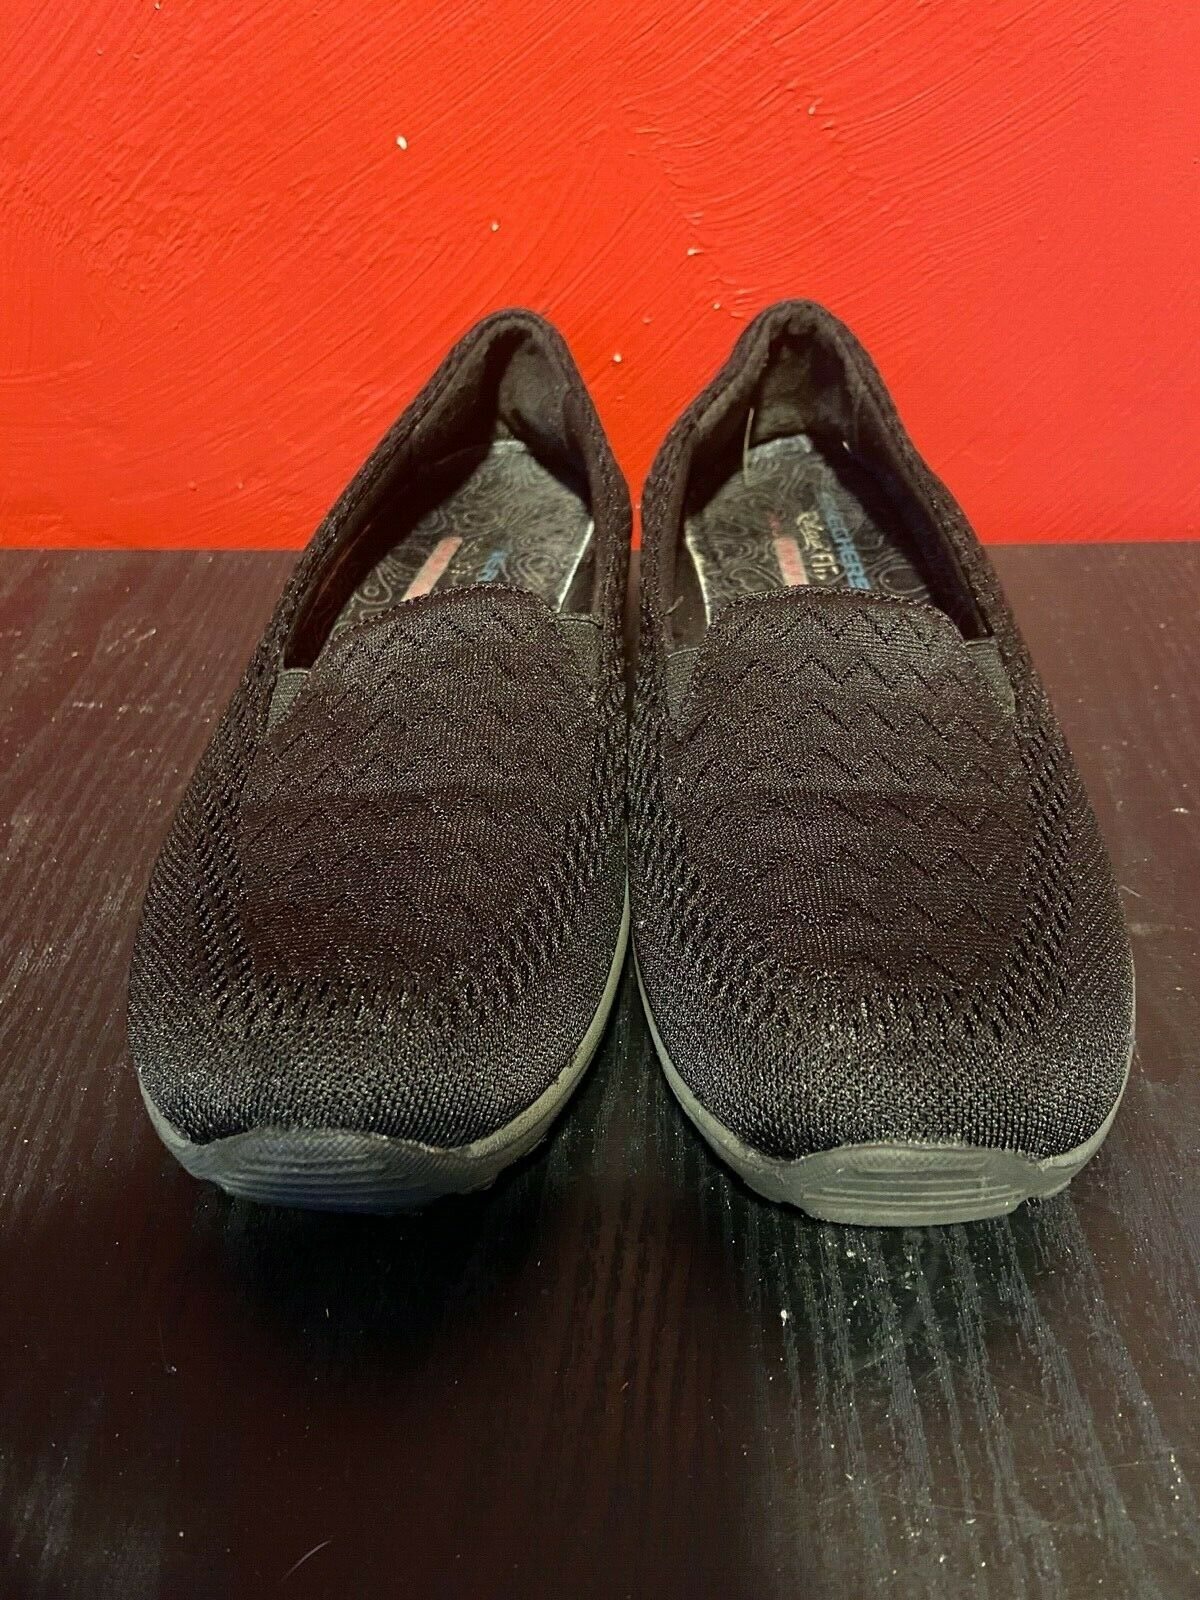 SKECHERS RELAXED FIT AIR-COOLED MEMORY FOAM SLIP-ON SHOES WOMENS SIZE 8.5